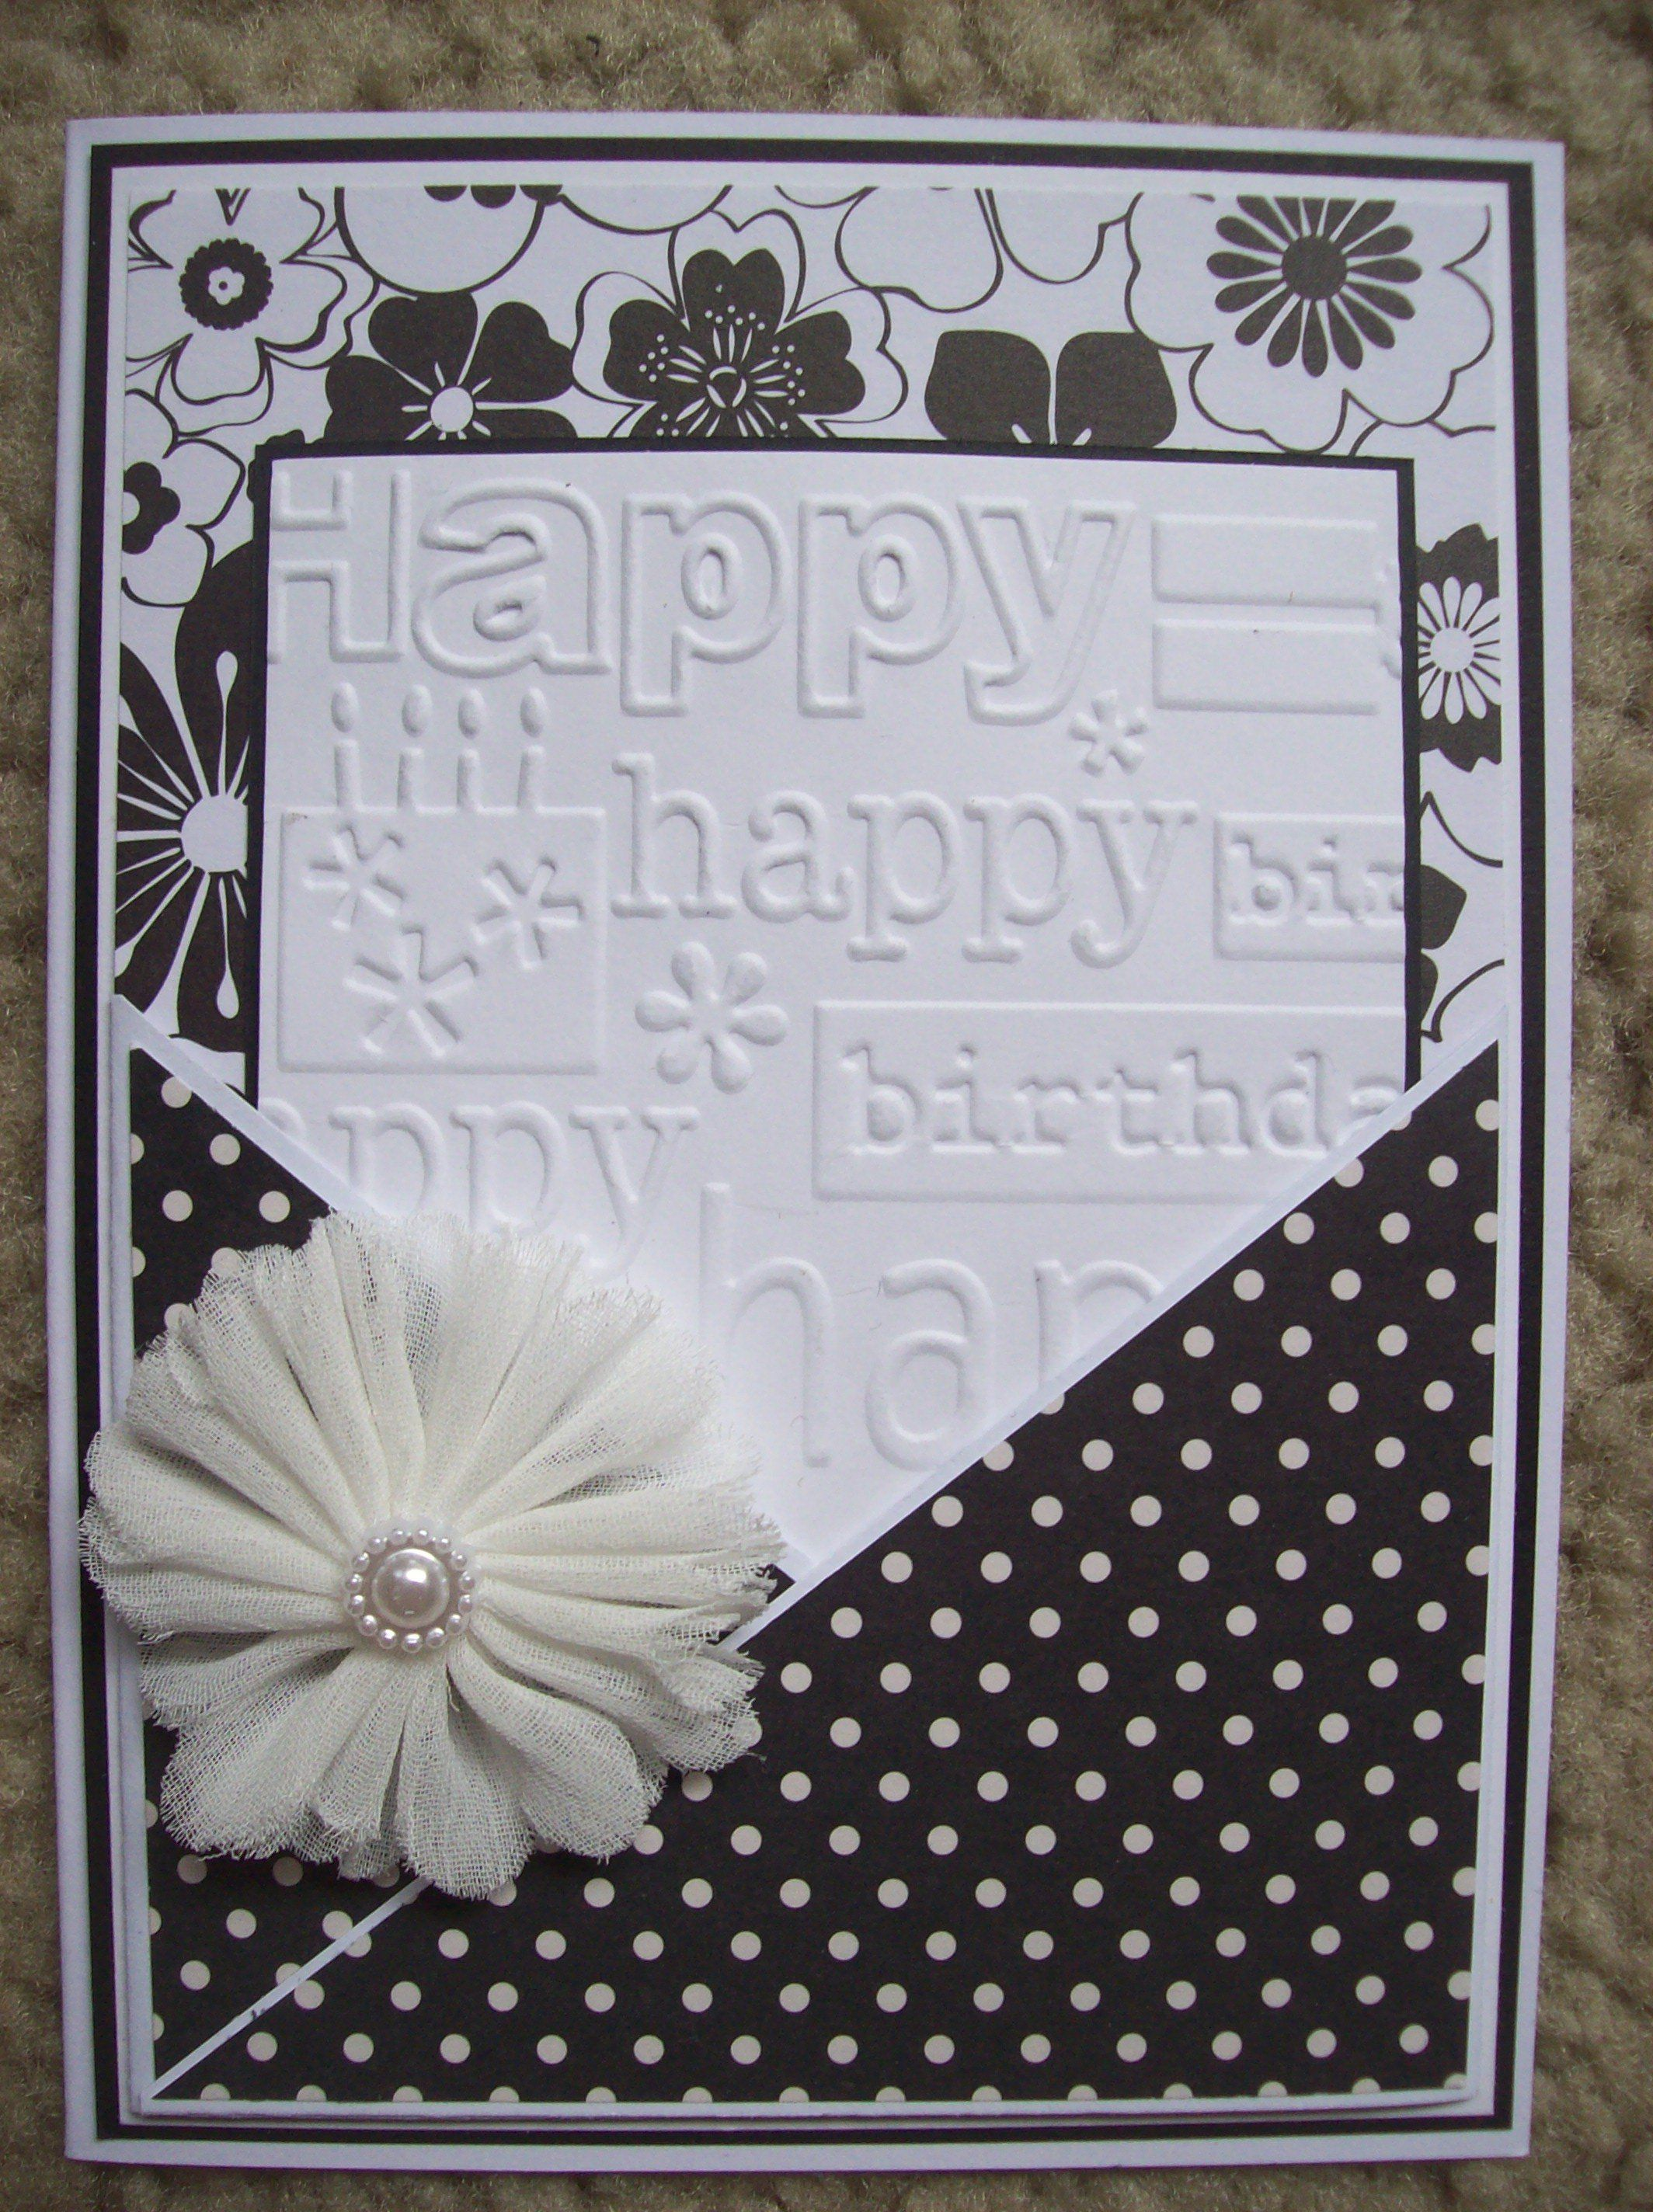 Happy birthday cards birthday pinterest happy birthday